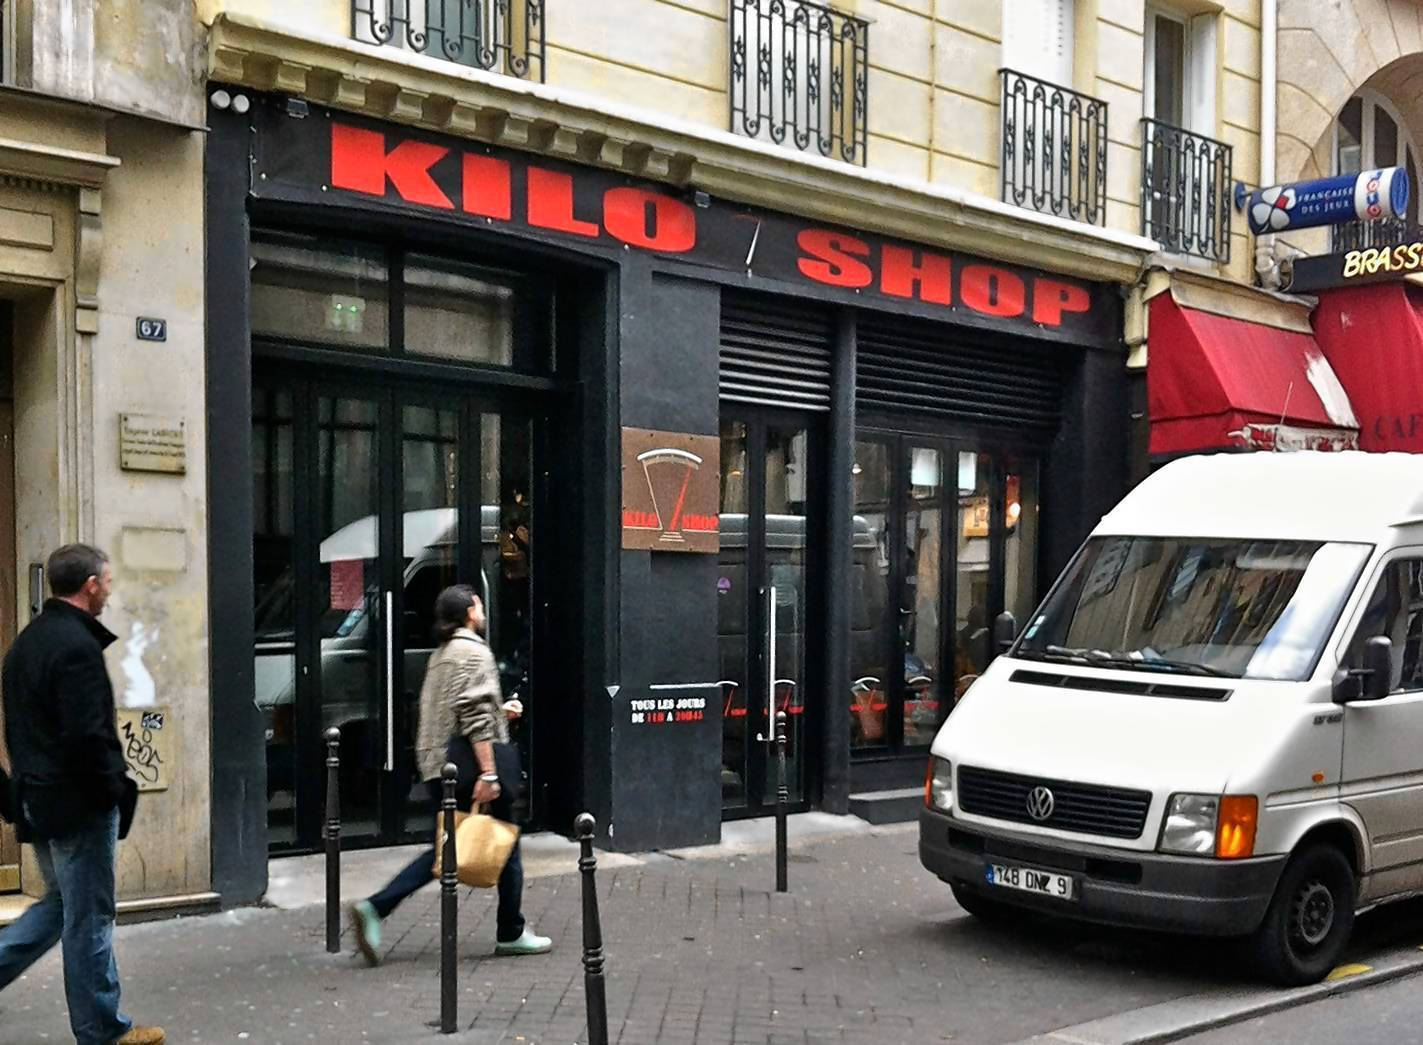 Parisians can pay for clothes by kilo